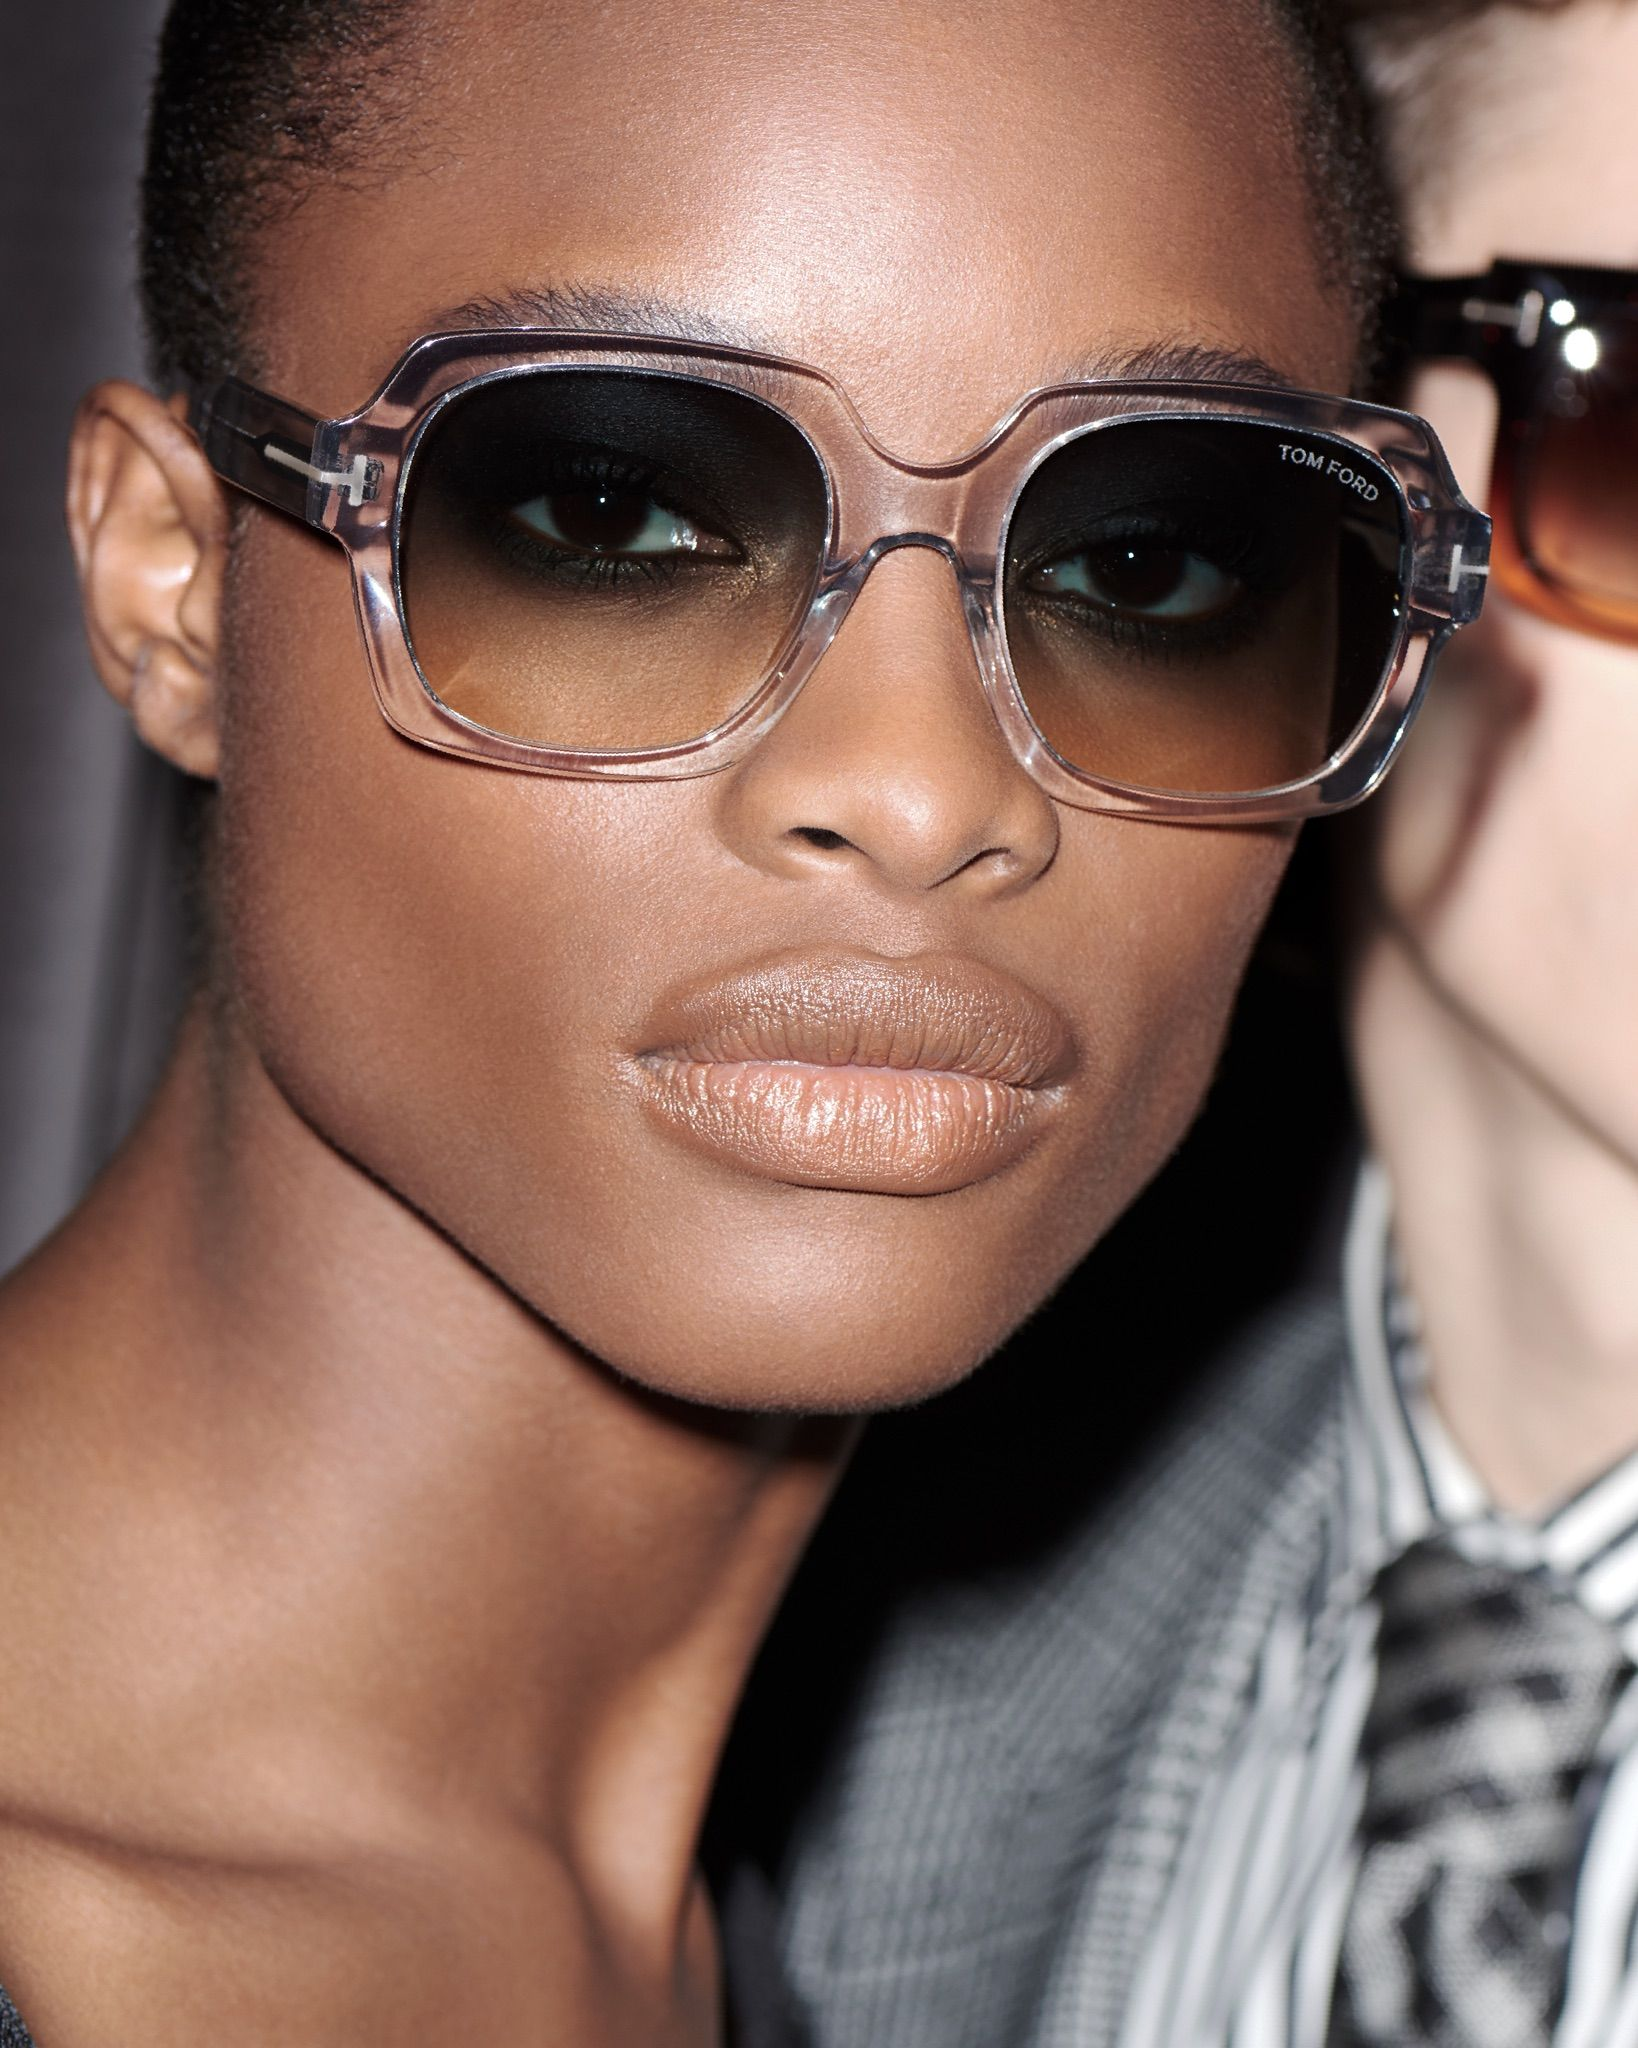 Autumn sunglasses in 2019   TOM FORD EYEWEAR   Pinterest ... 7888bdc08983